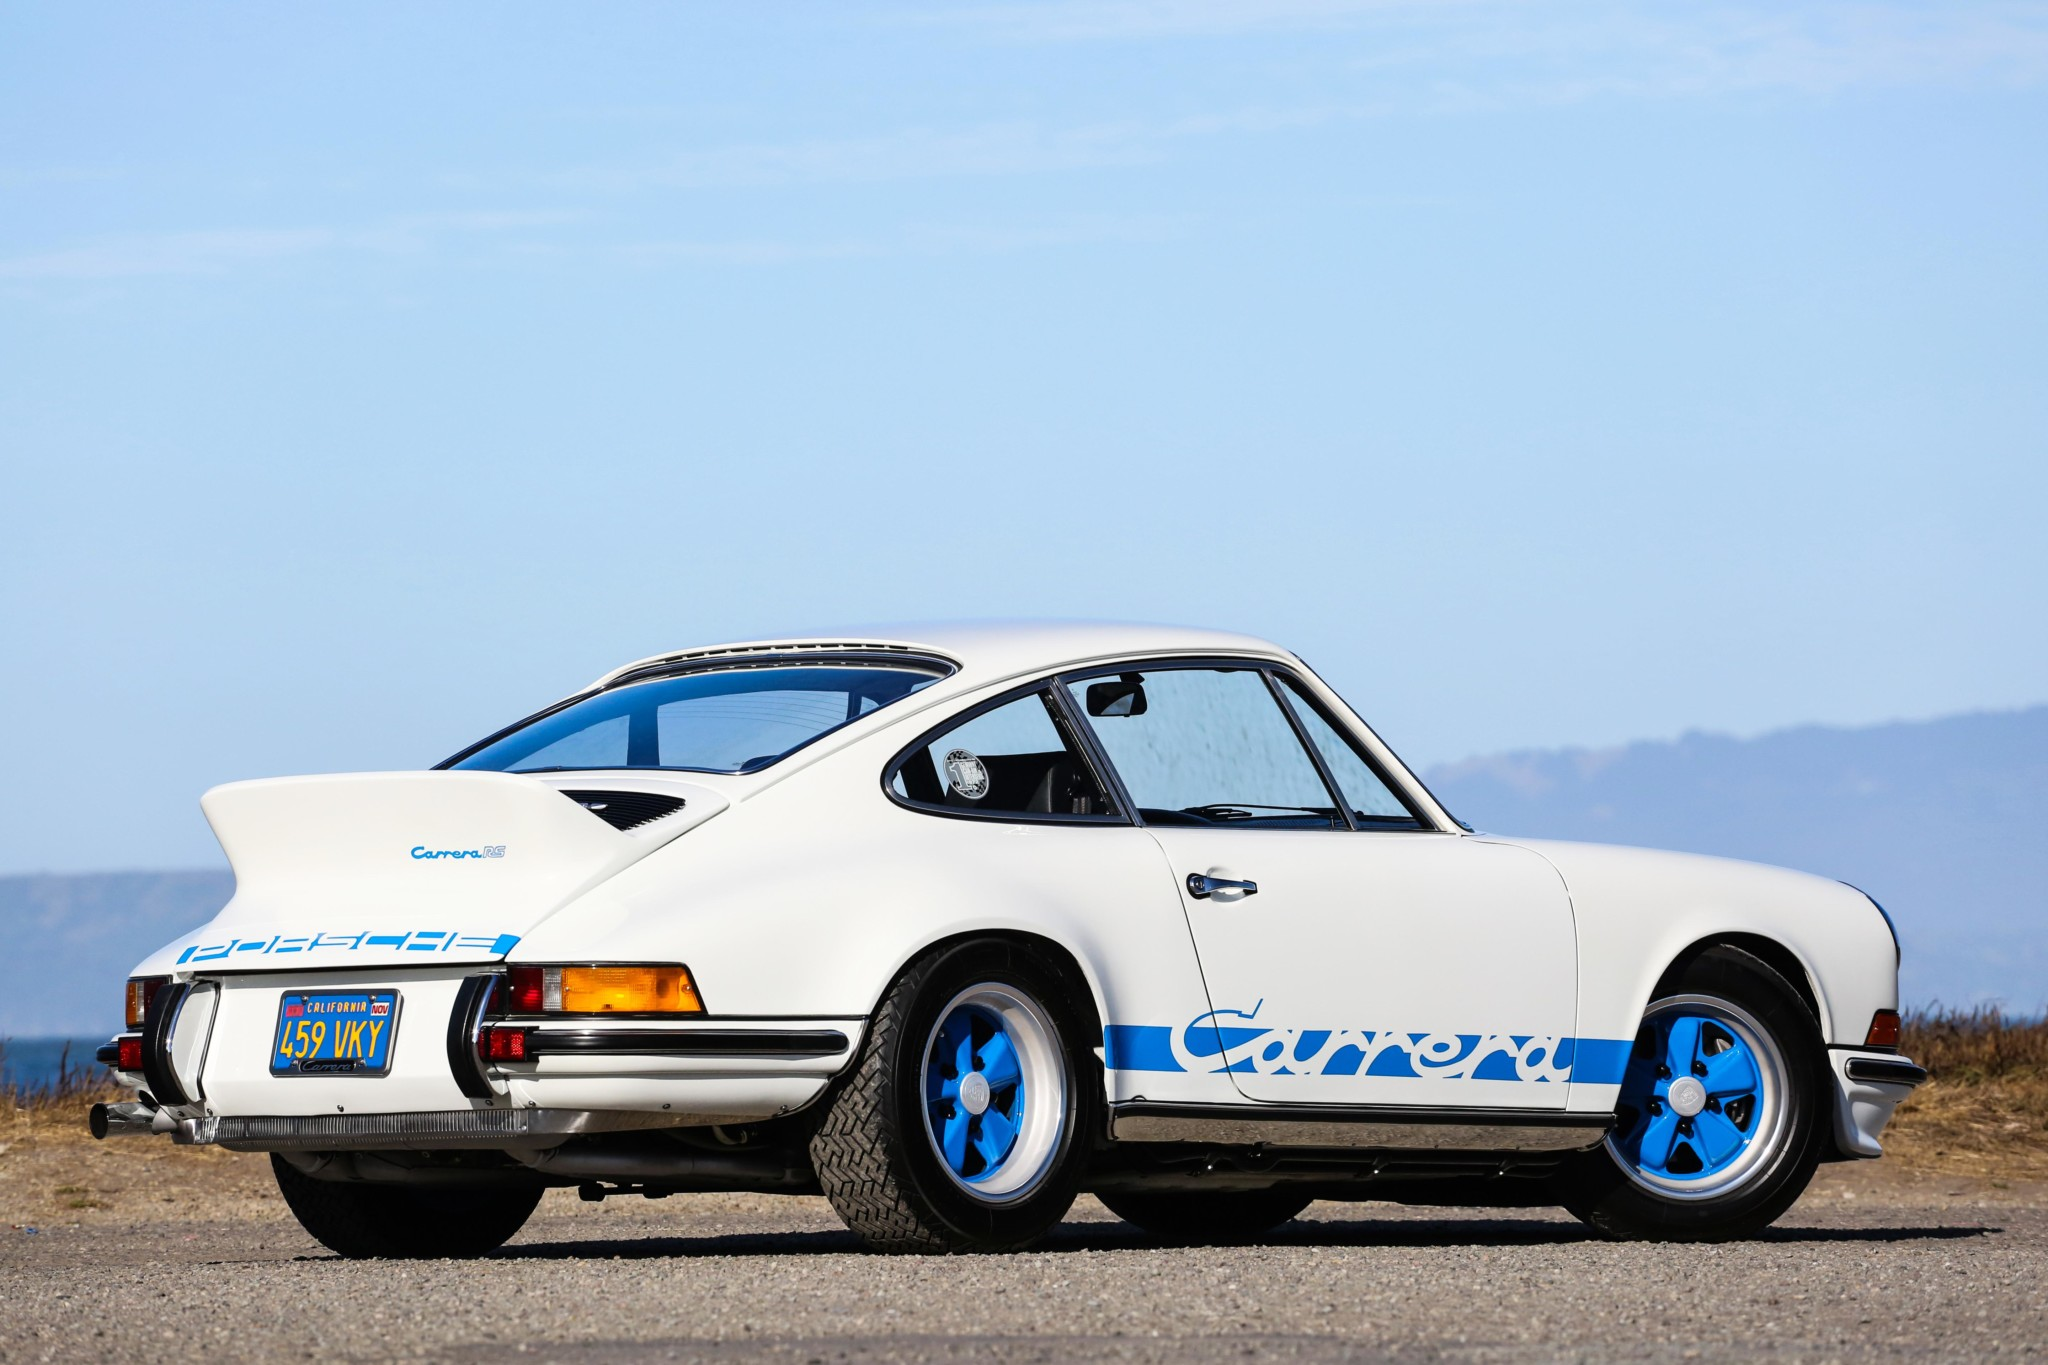 Porsche-911-Carrera-RS-2.7-1973-for-sale-16